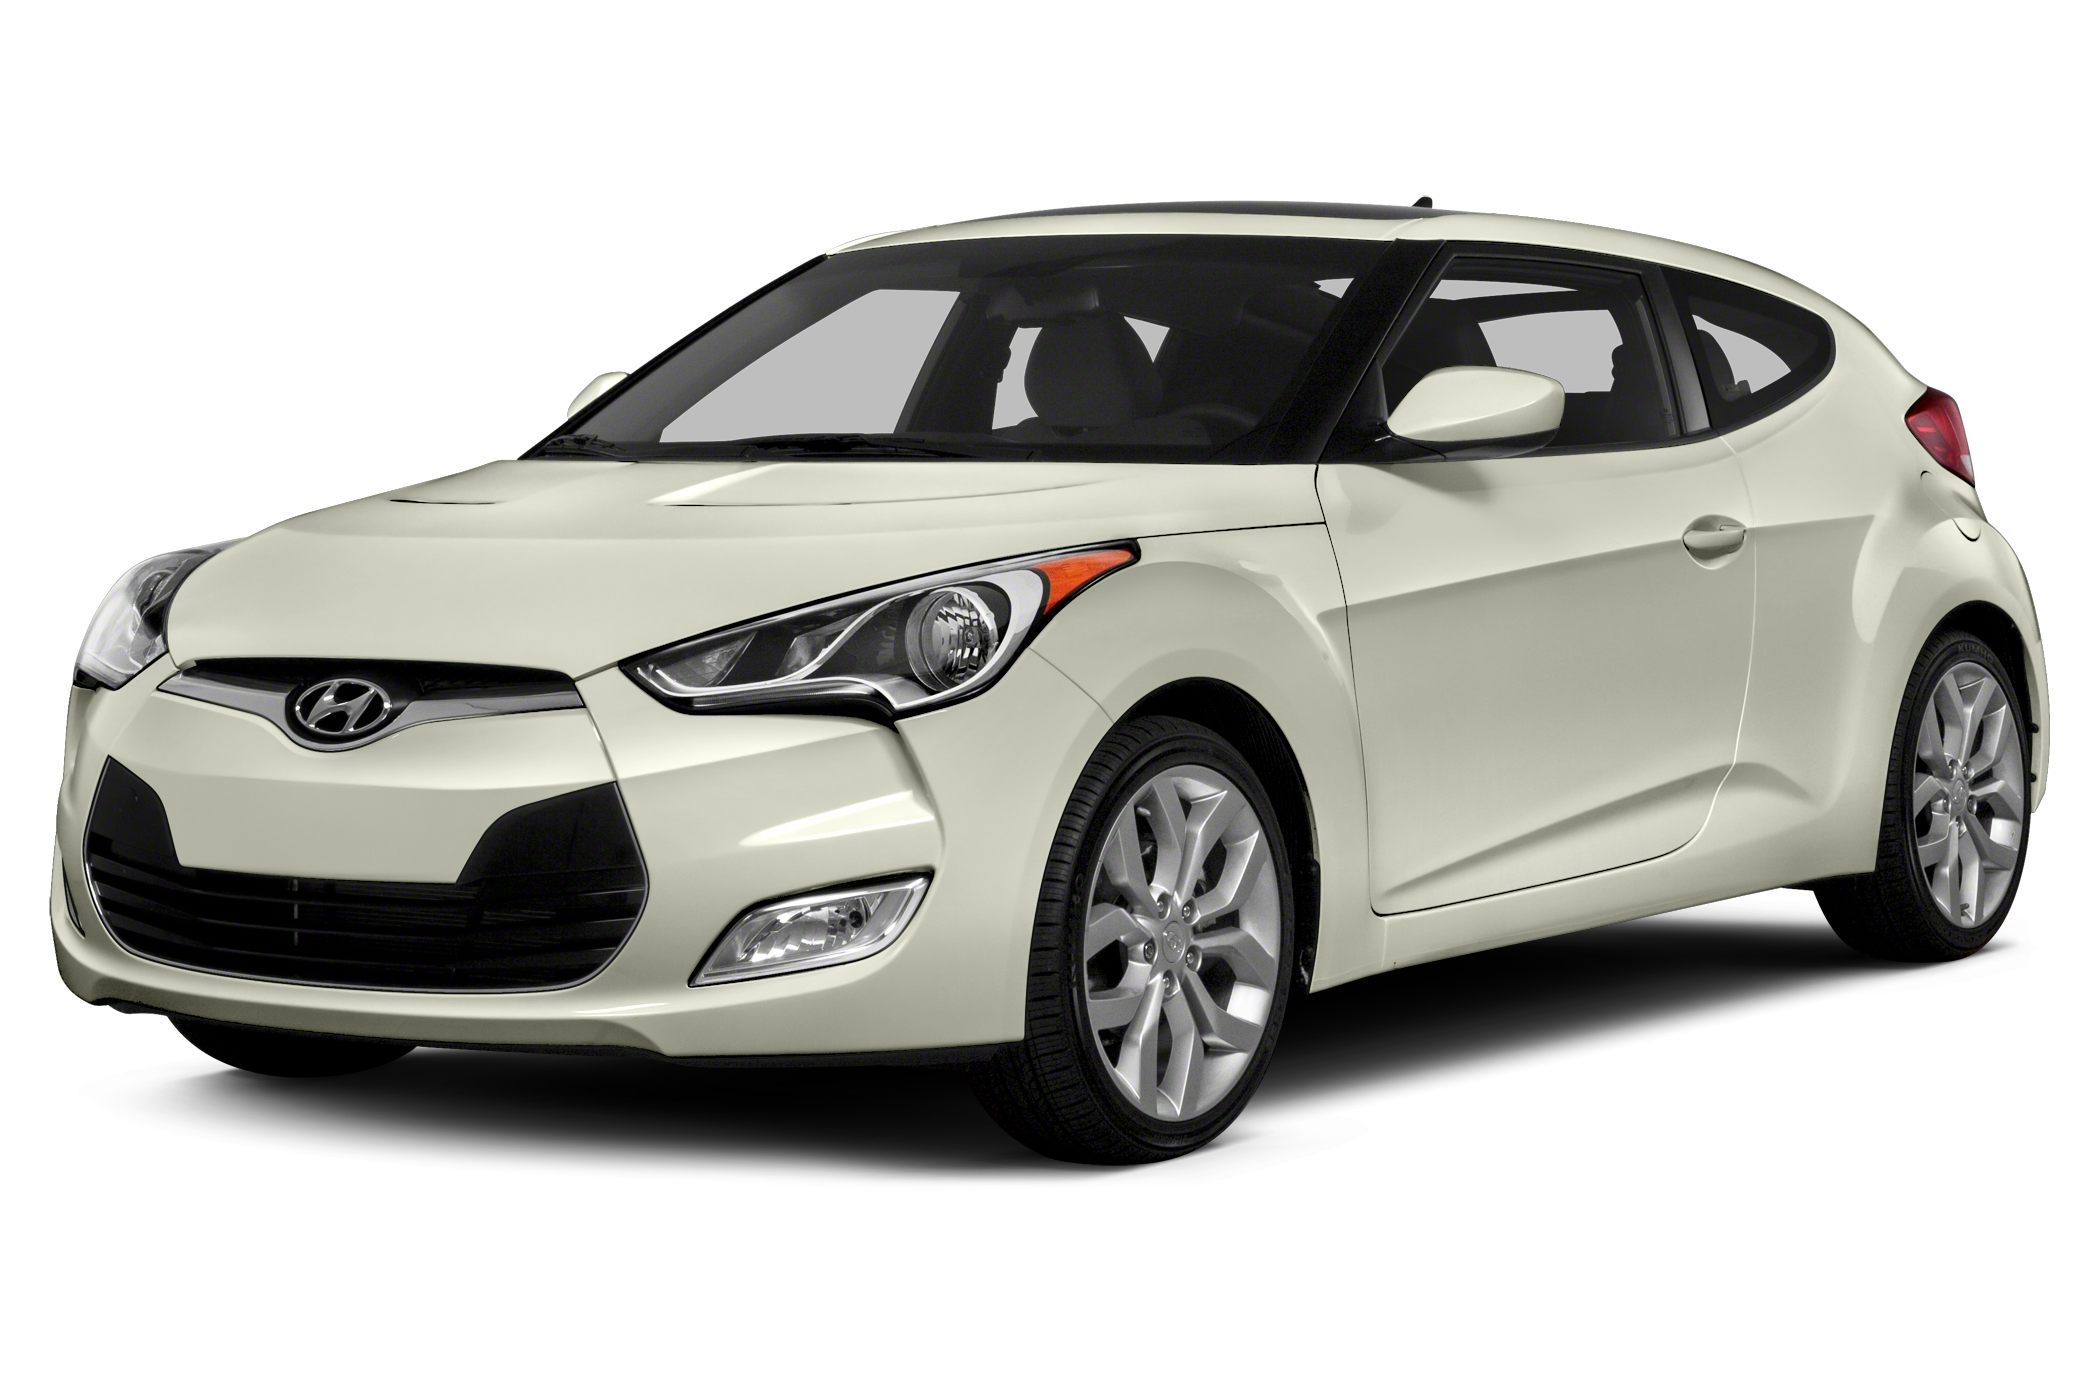 2015 Hyundai Veloster Base Hatchback for sale in Cartersville for $19,540 with 0 miles.